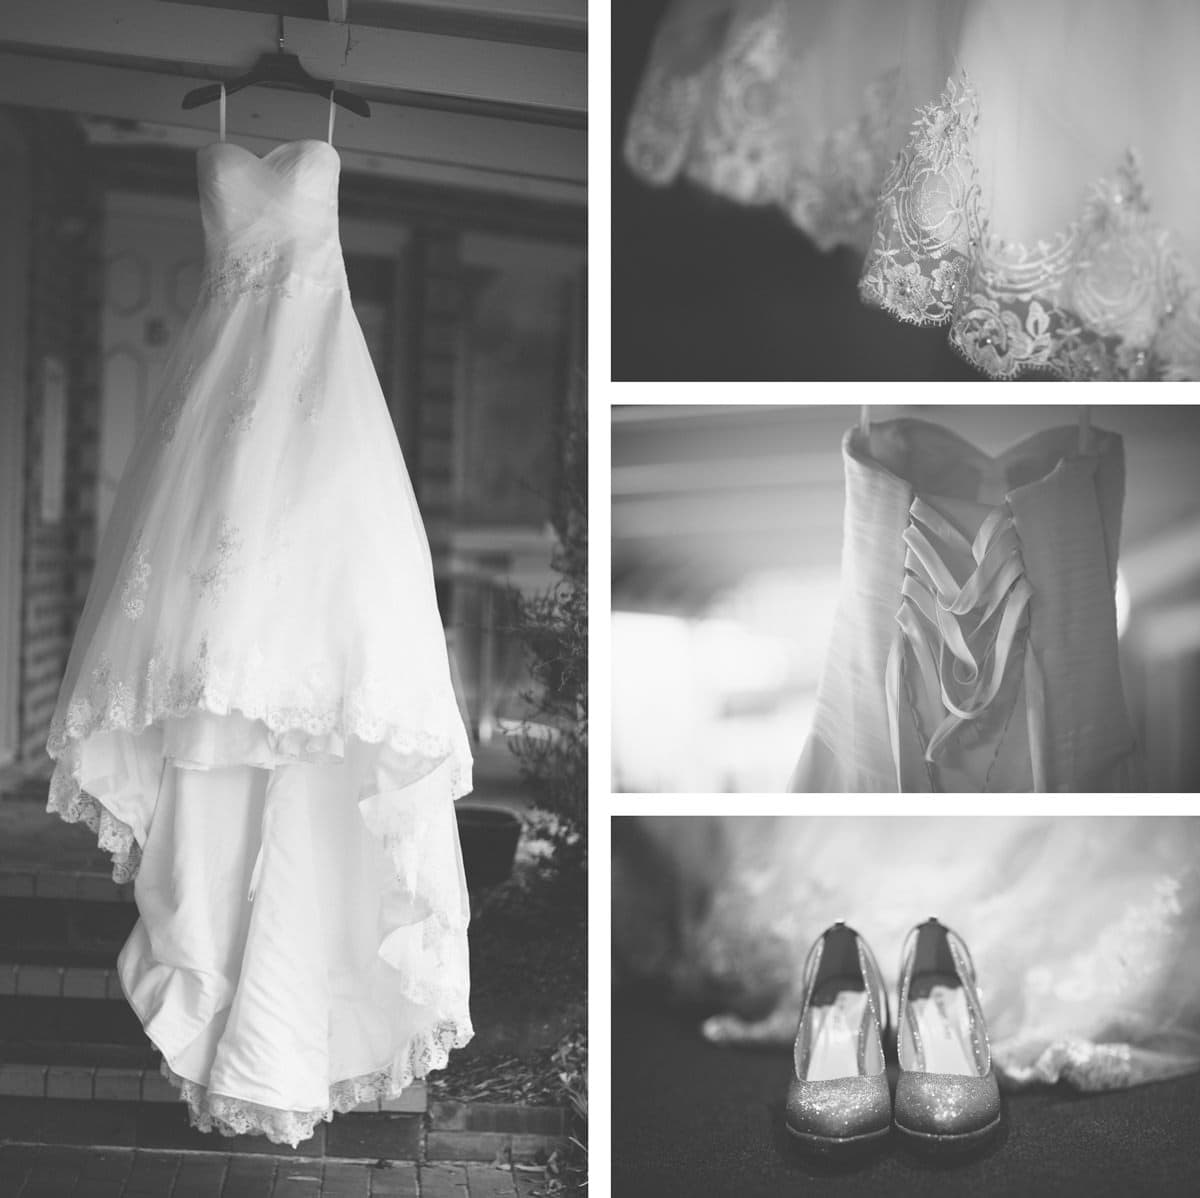 elegant wedding dress photographed in black and white